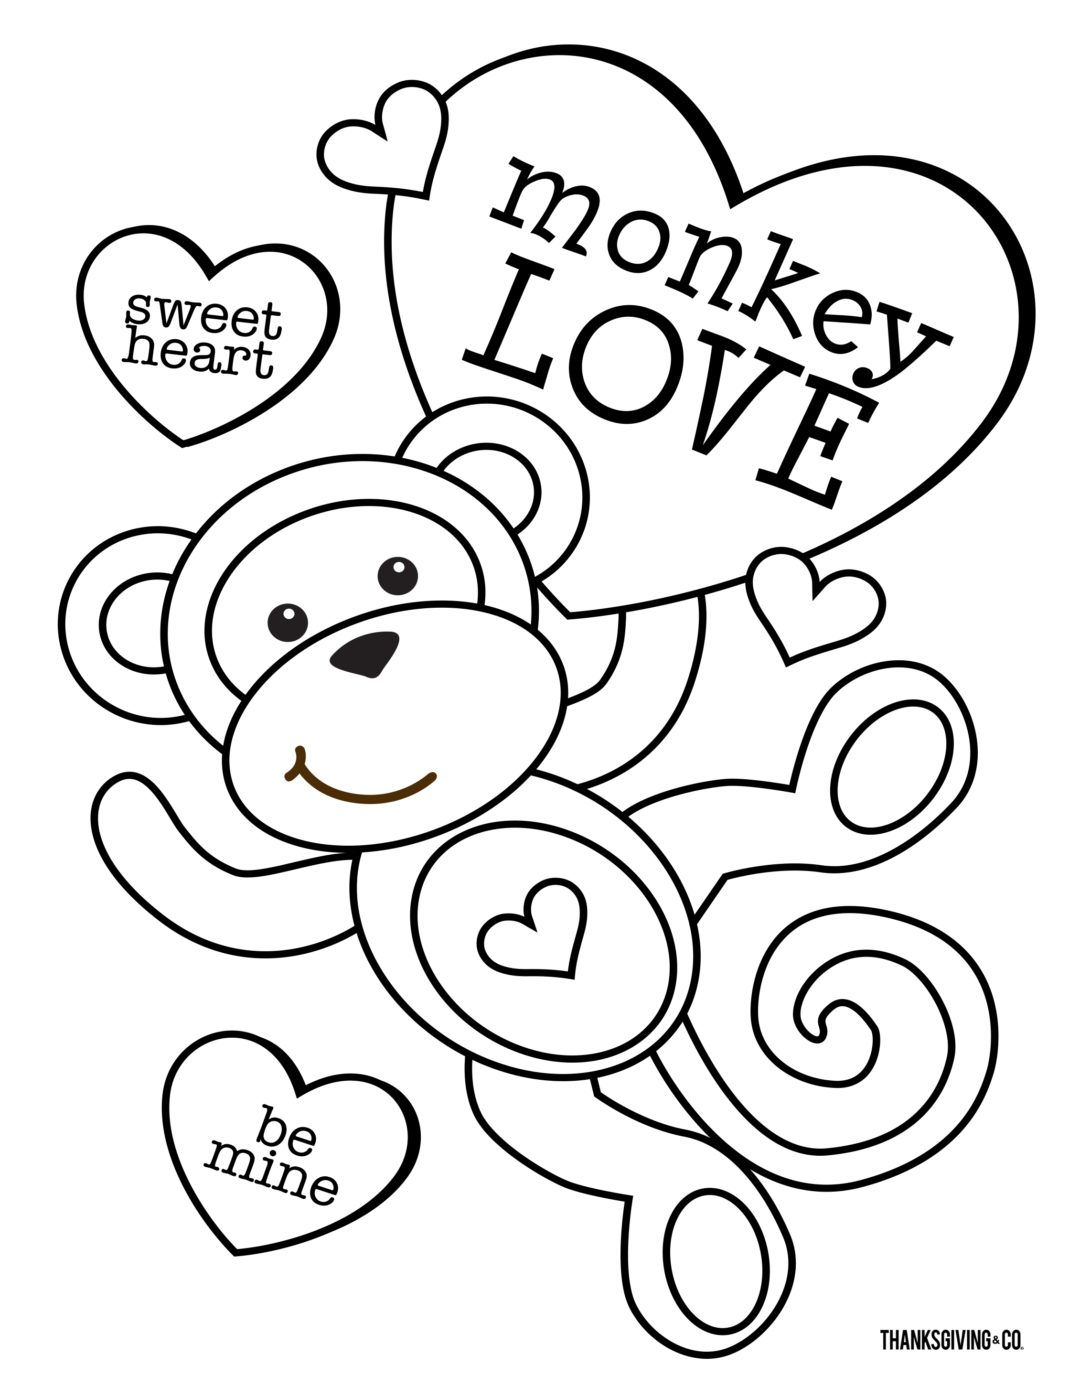 4 Free Valentine S Day Coloring Pages For Kids In 2020 Valentine Coloring Sheets Free Kids Coloring Pages Valentines Day Coloring Page